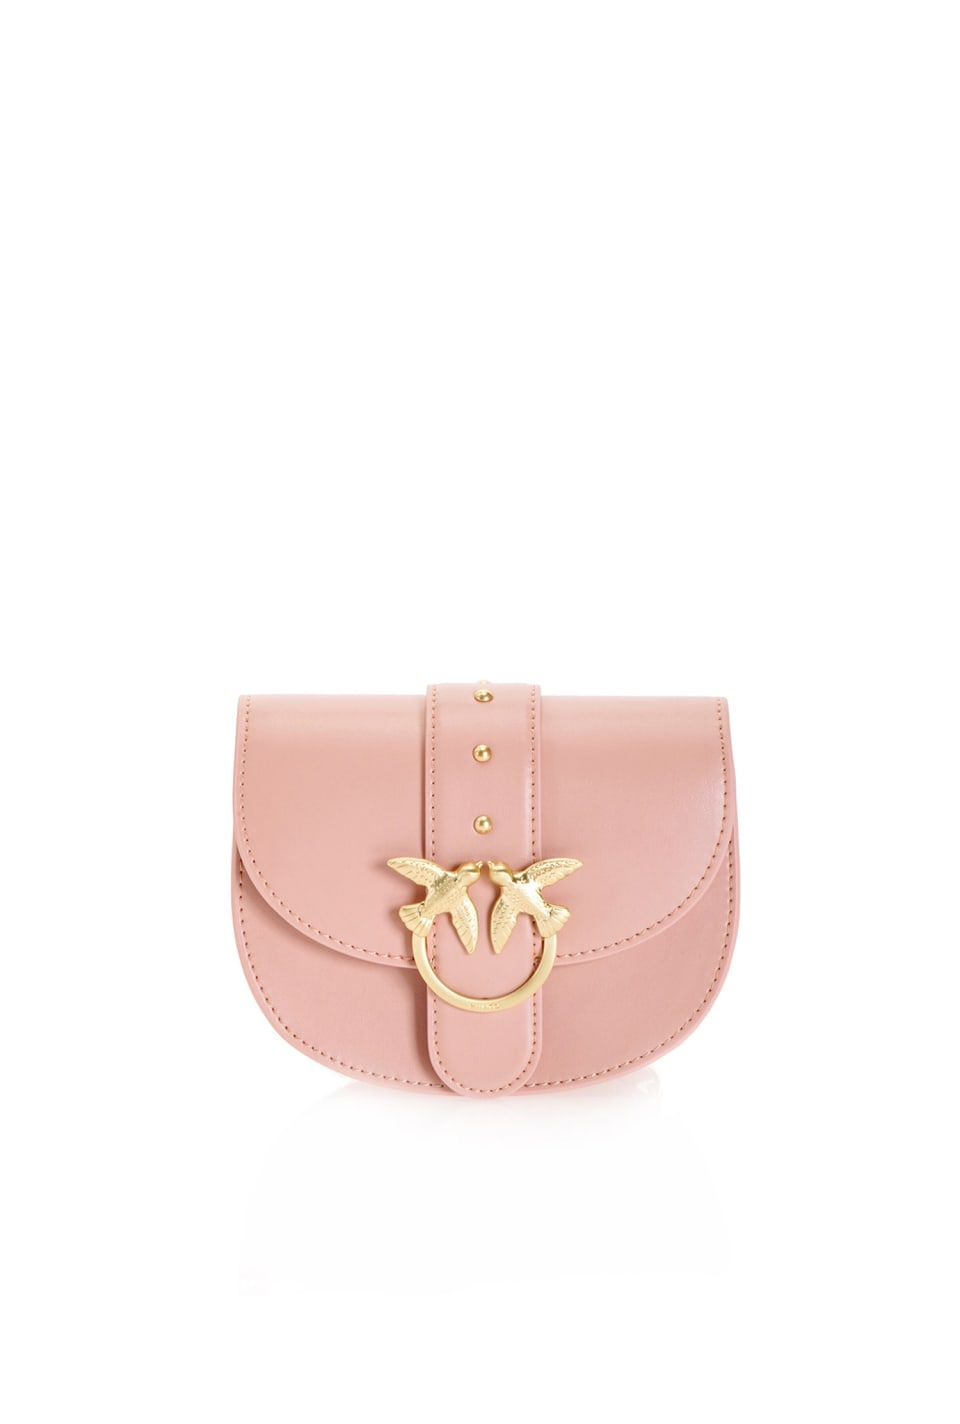 Simply Baby Round Love Bag in leather - Pinko